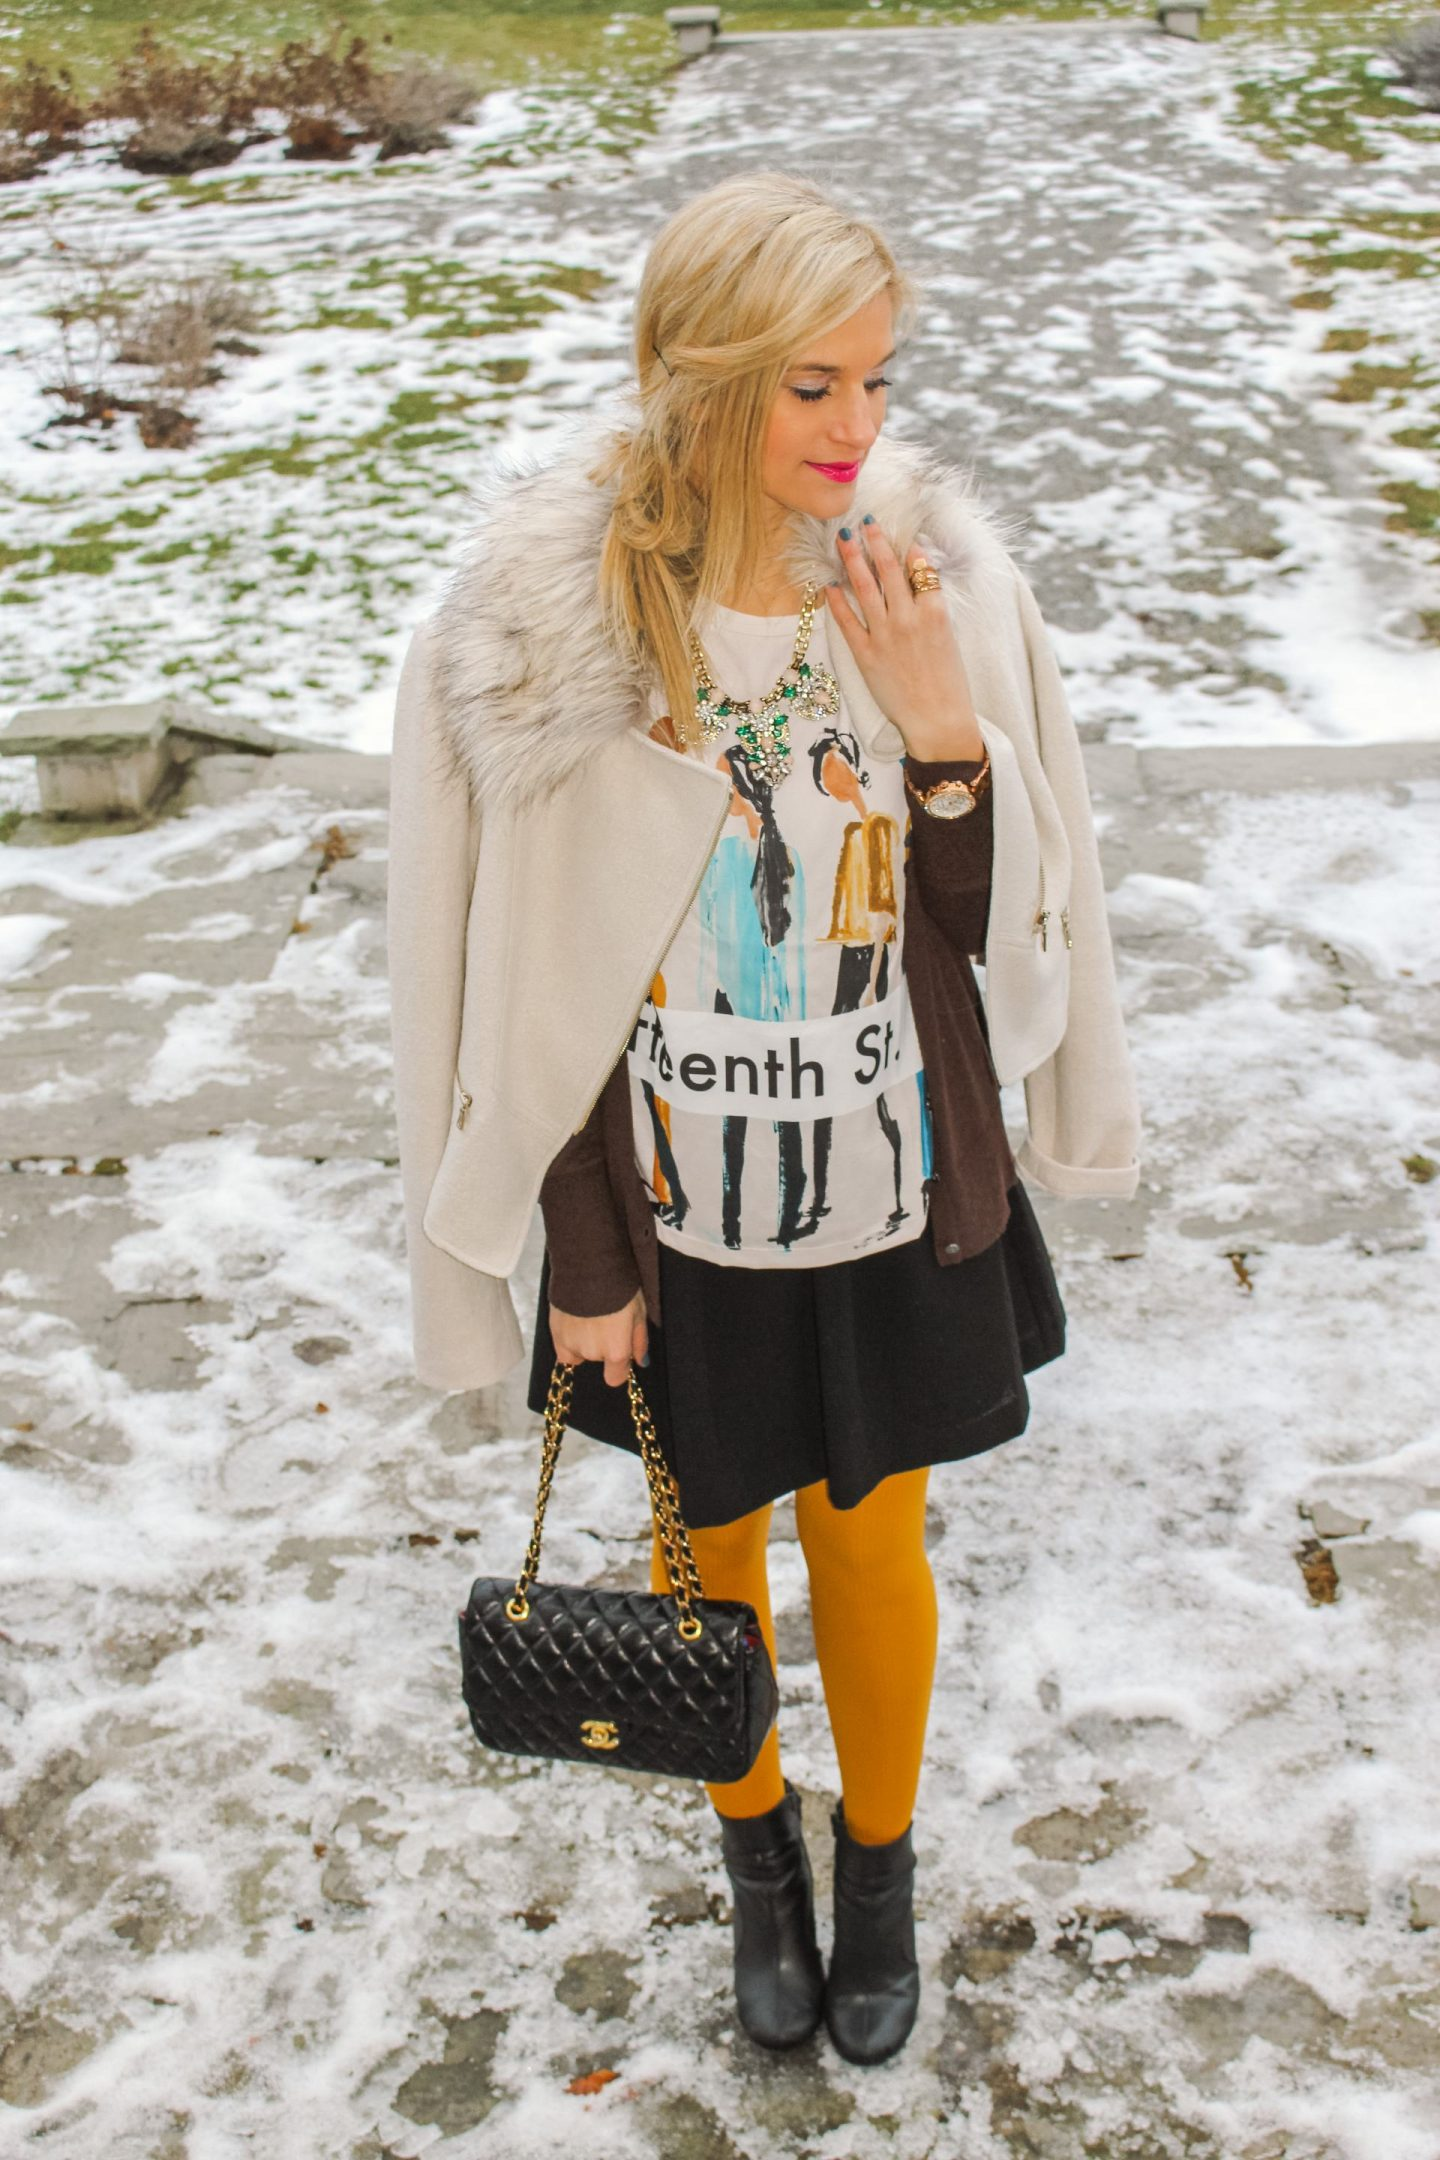 How to pull off wearing yellow tights in the winter as an adult. Black skirt with graphic top, cardigan and yellow tights.